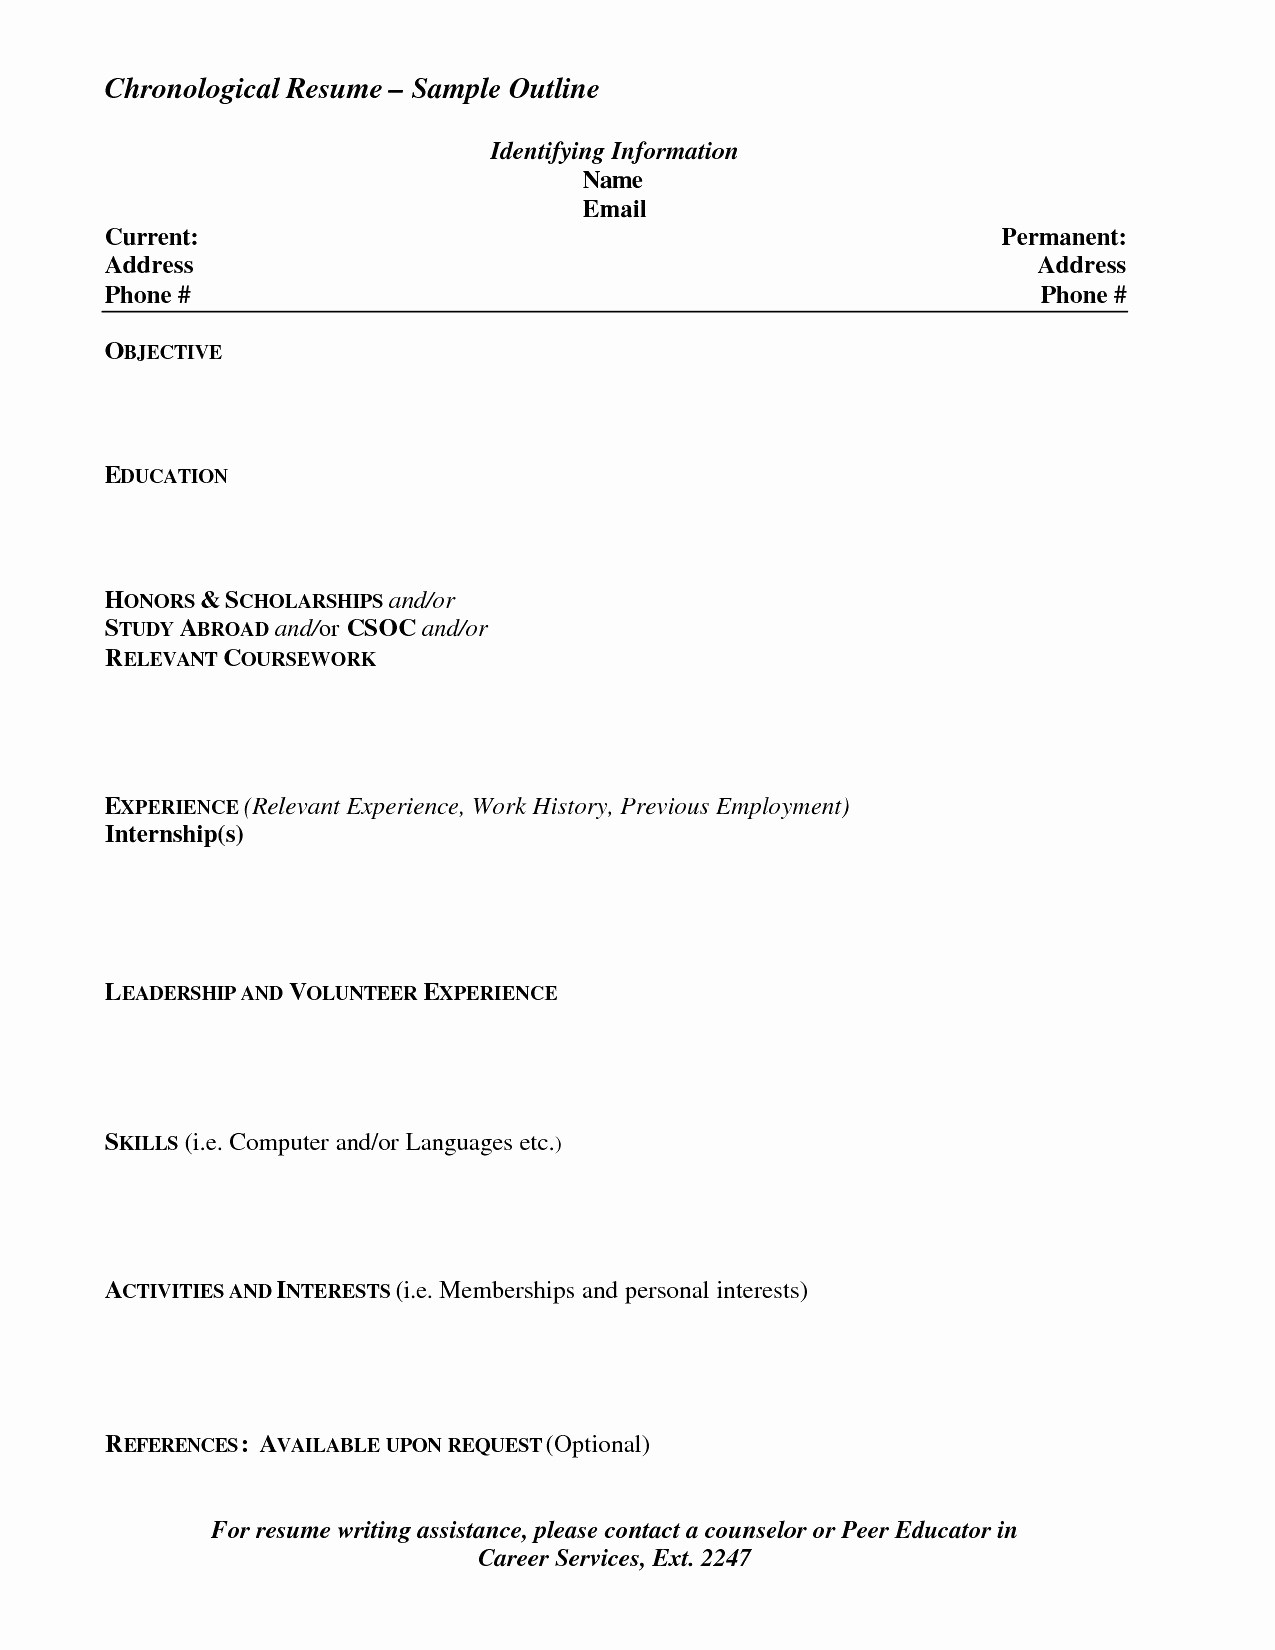 Survey Cover Letter Template - Resume and Cover Letter Templates New How to format A Cover Letter